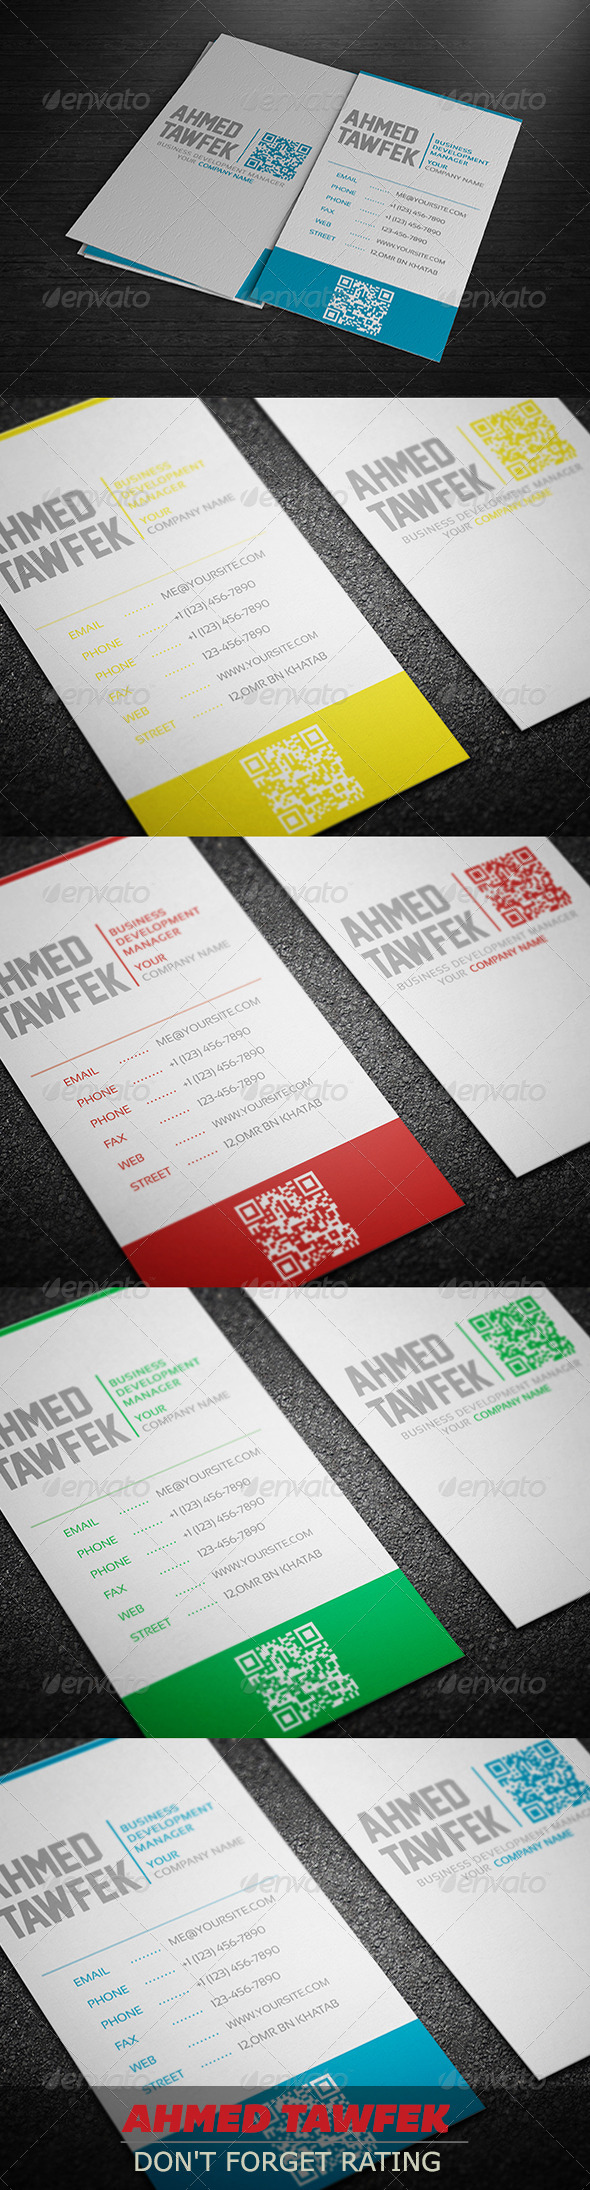 GraphicRiver Creative Color Business Card 4141871